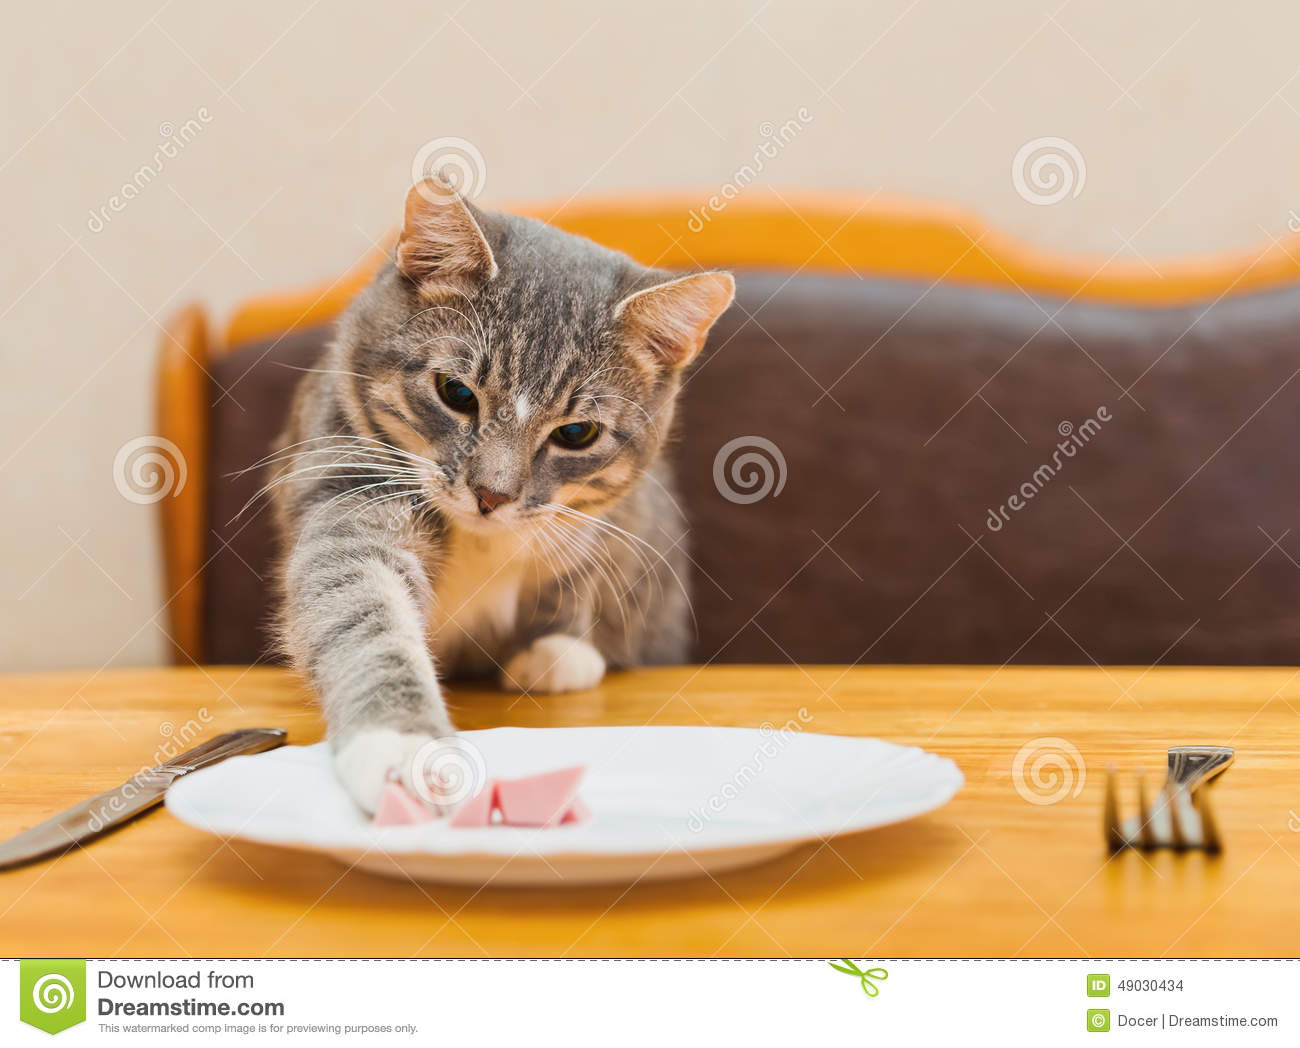 Cat Eating With Cutlery